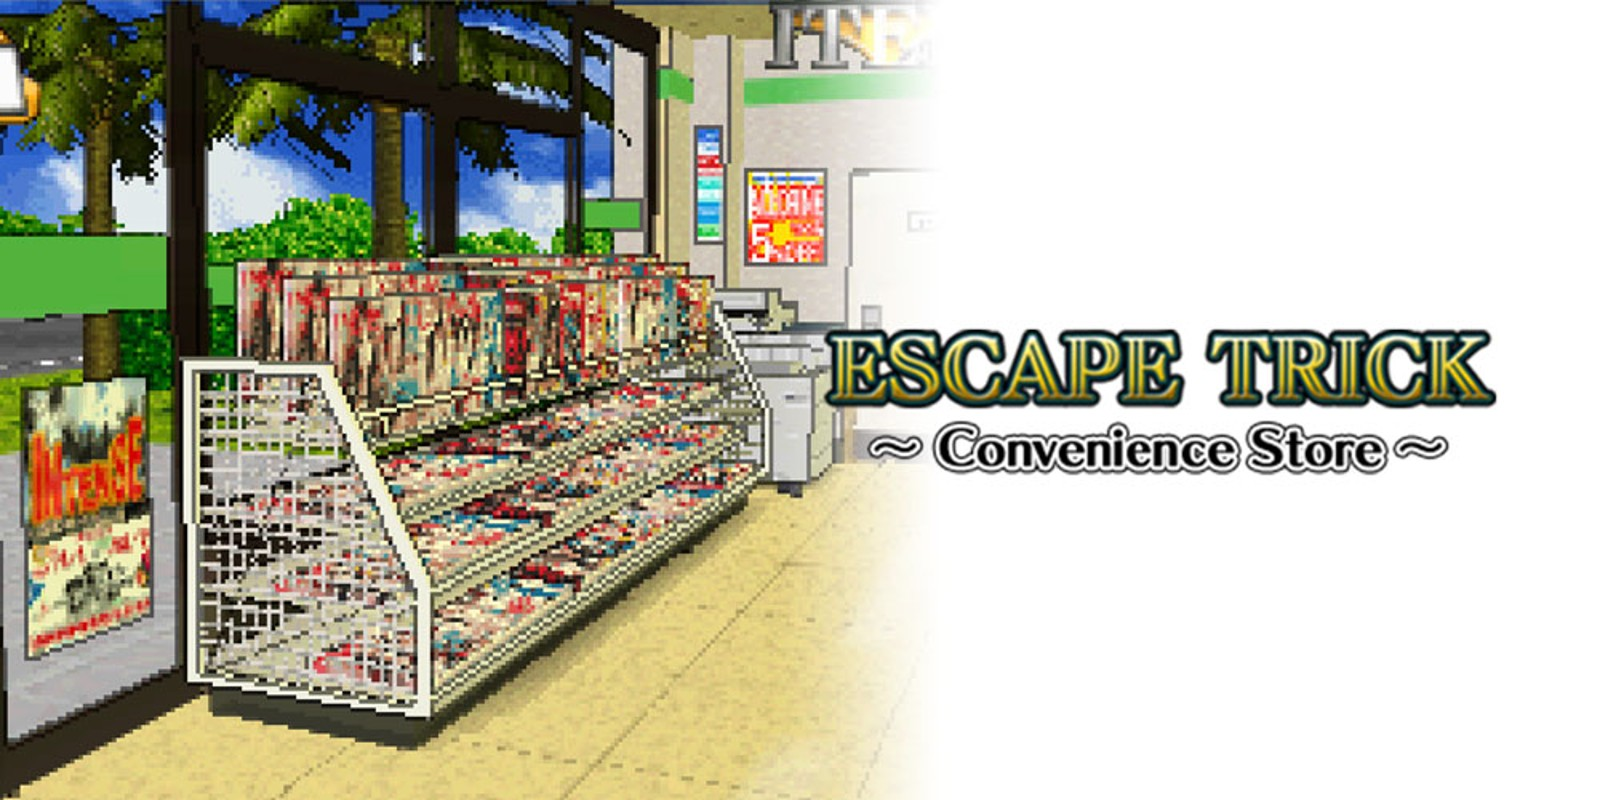 GO Series: Escape Trick Convenience Store